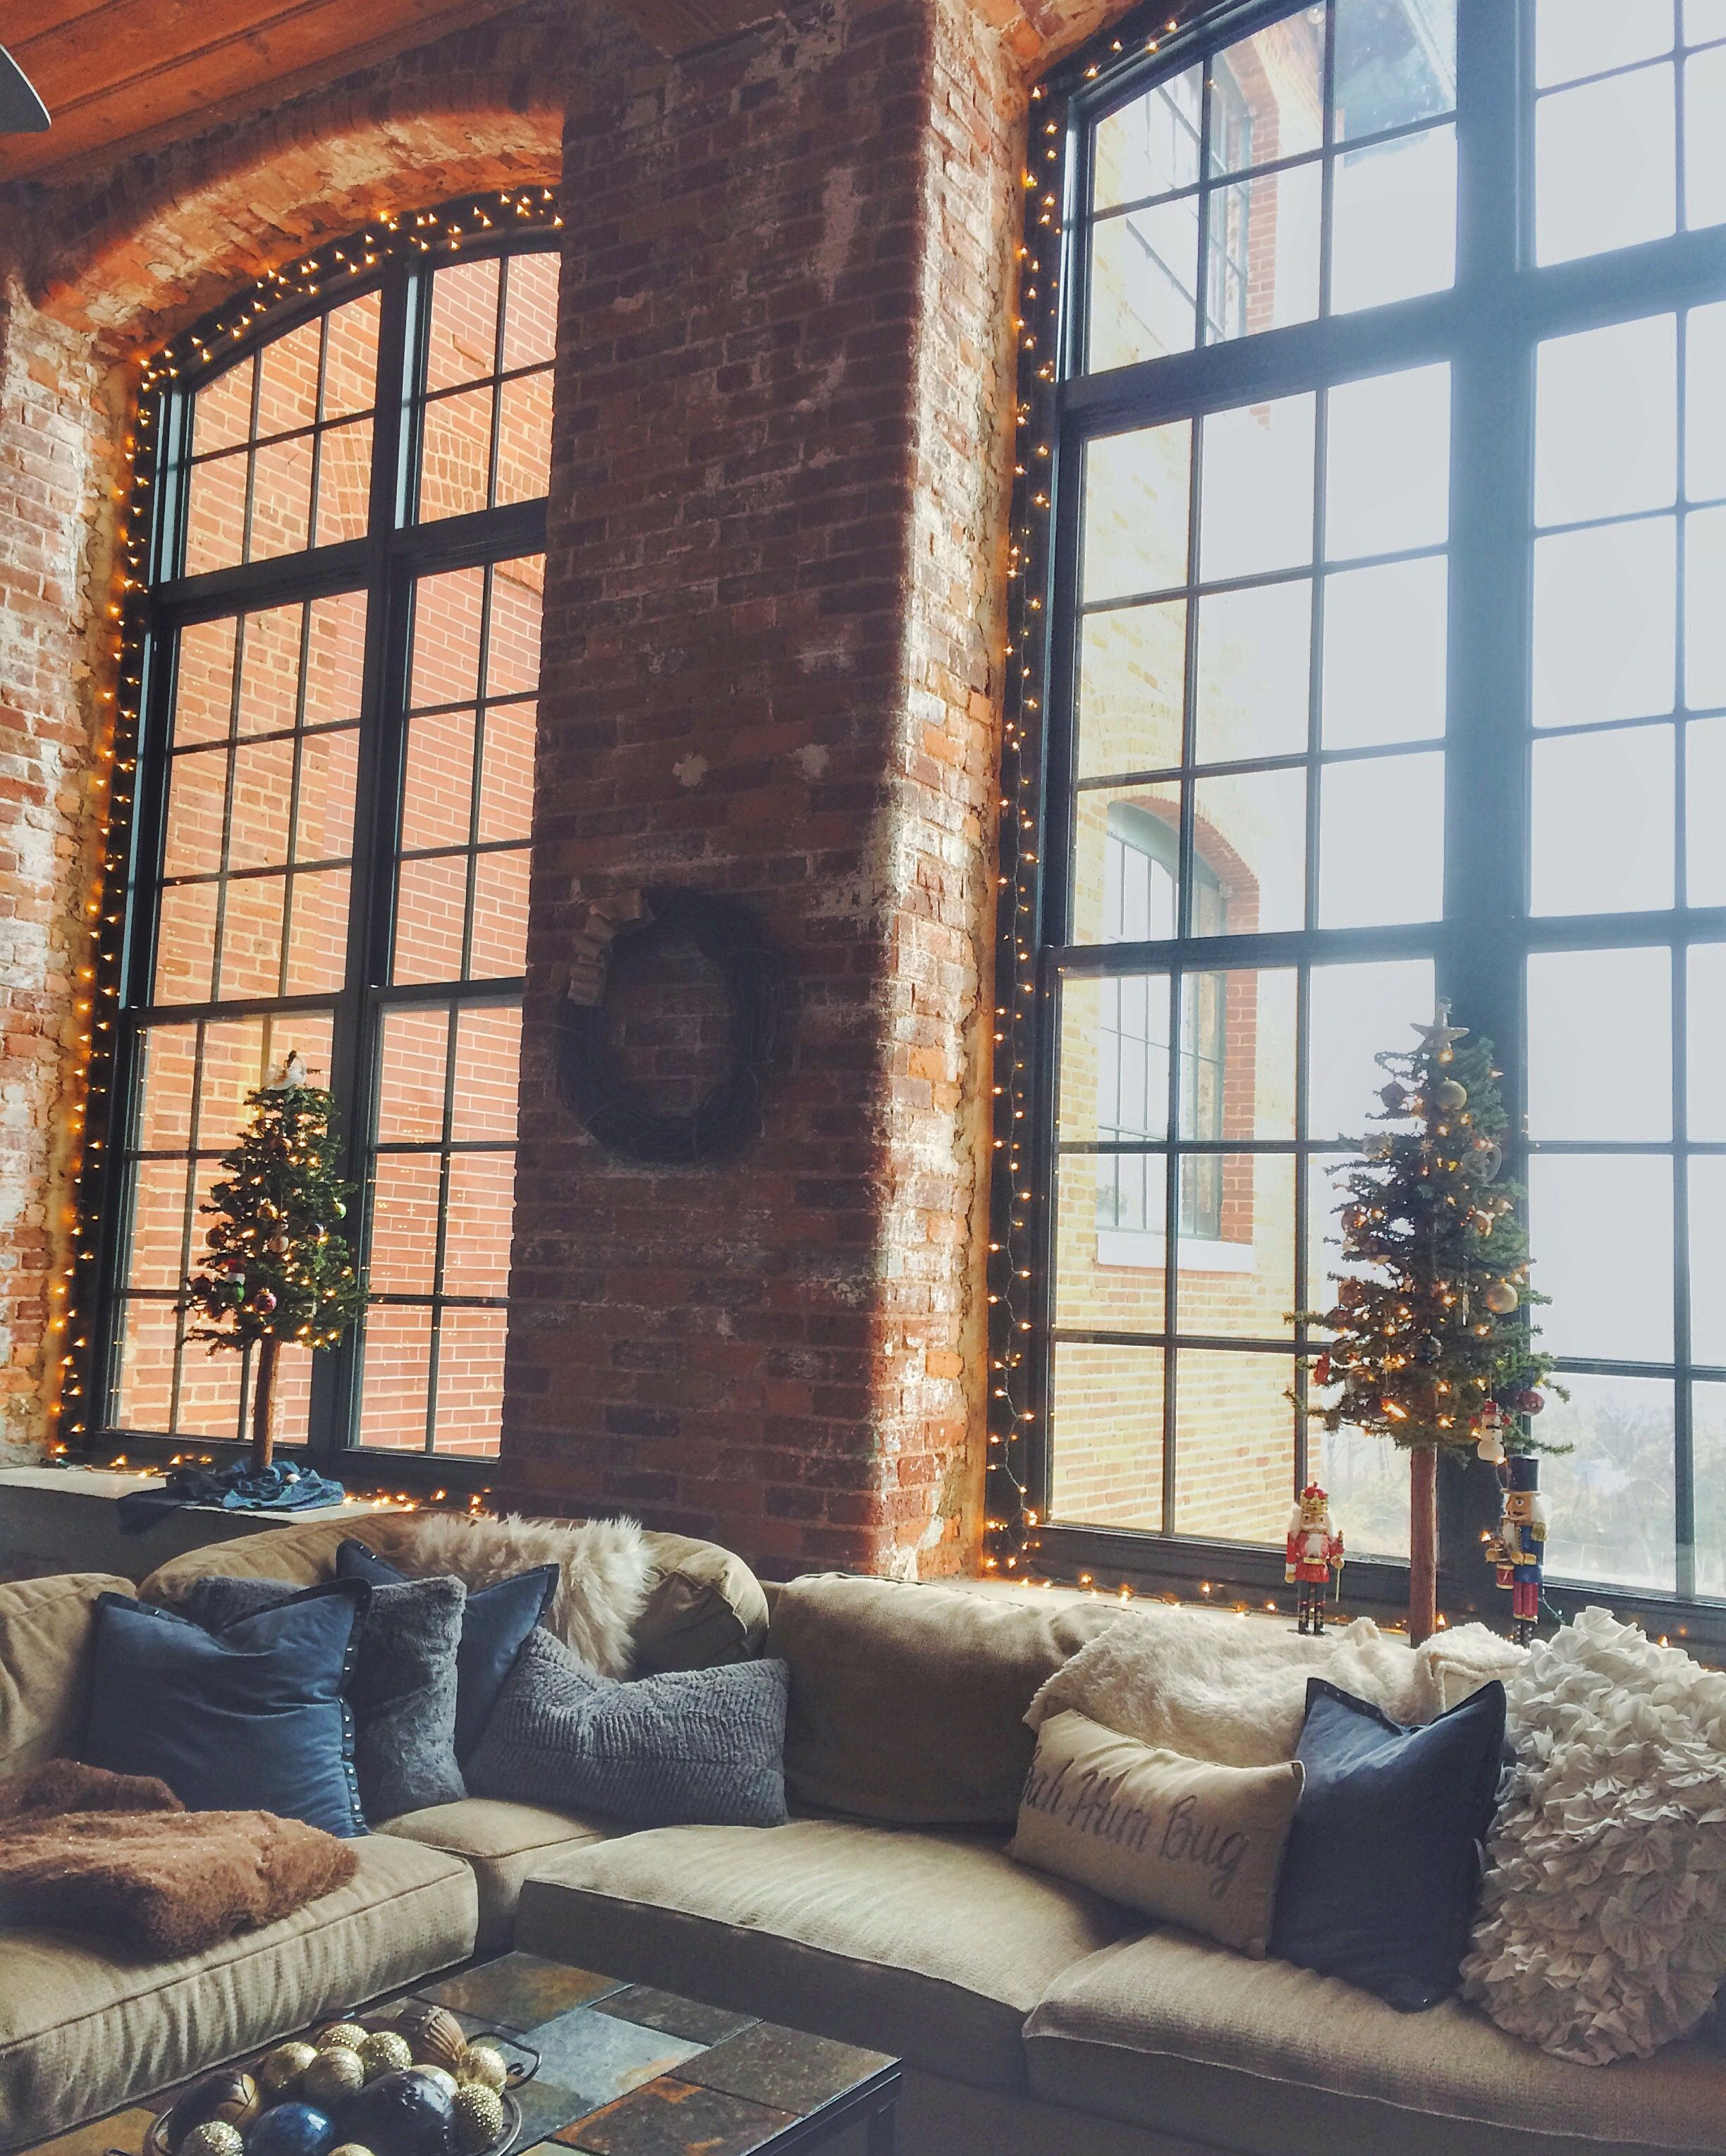 Exposed Brick Wall Cozy Loft Style Apartment Christmas Decor Exposed Brick Wall